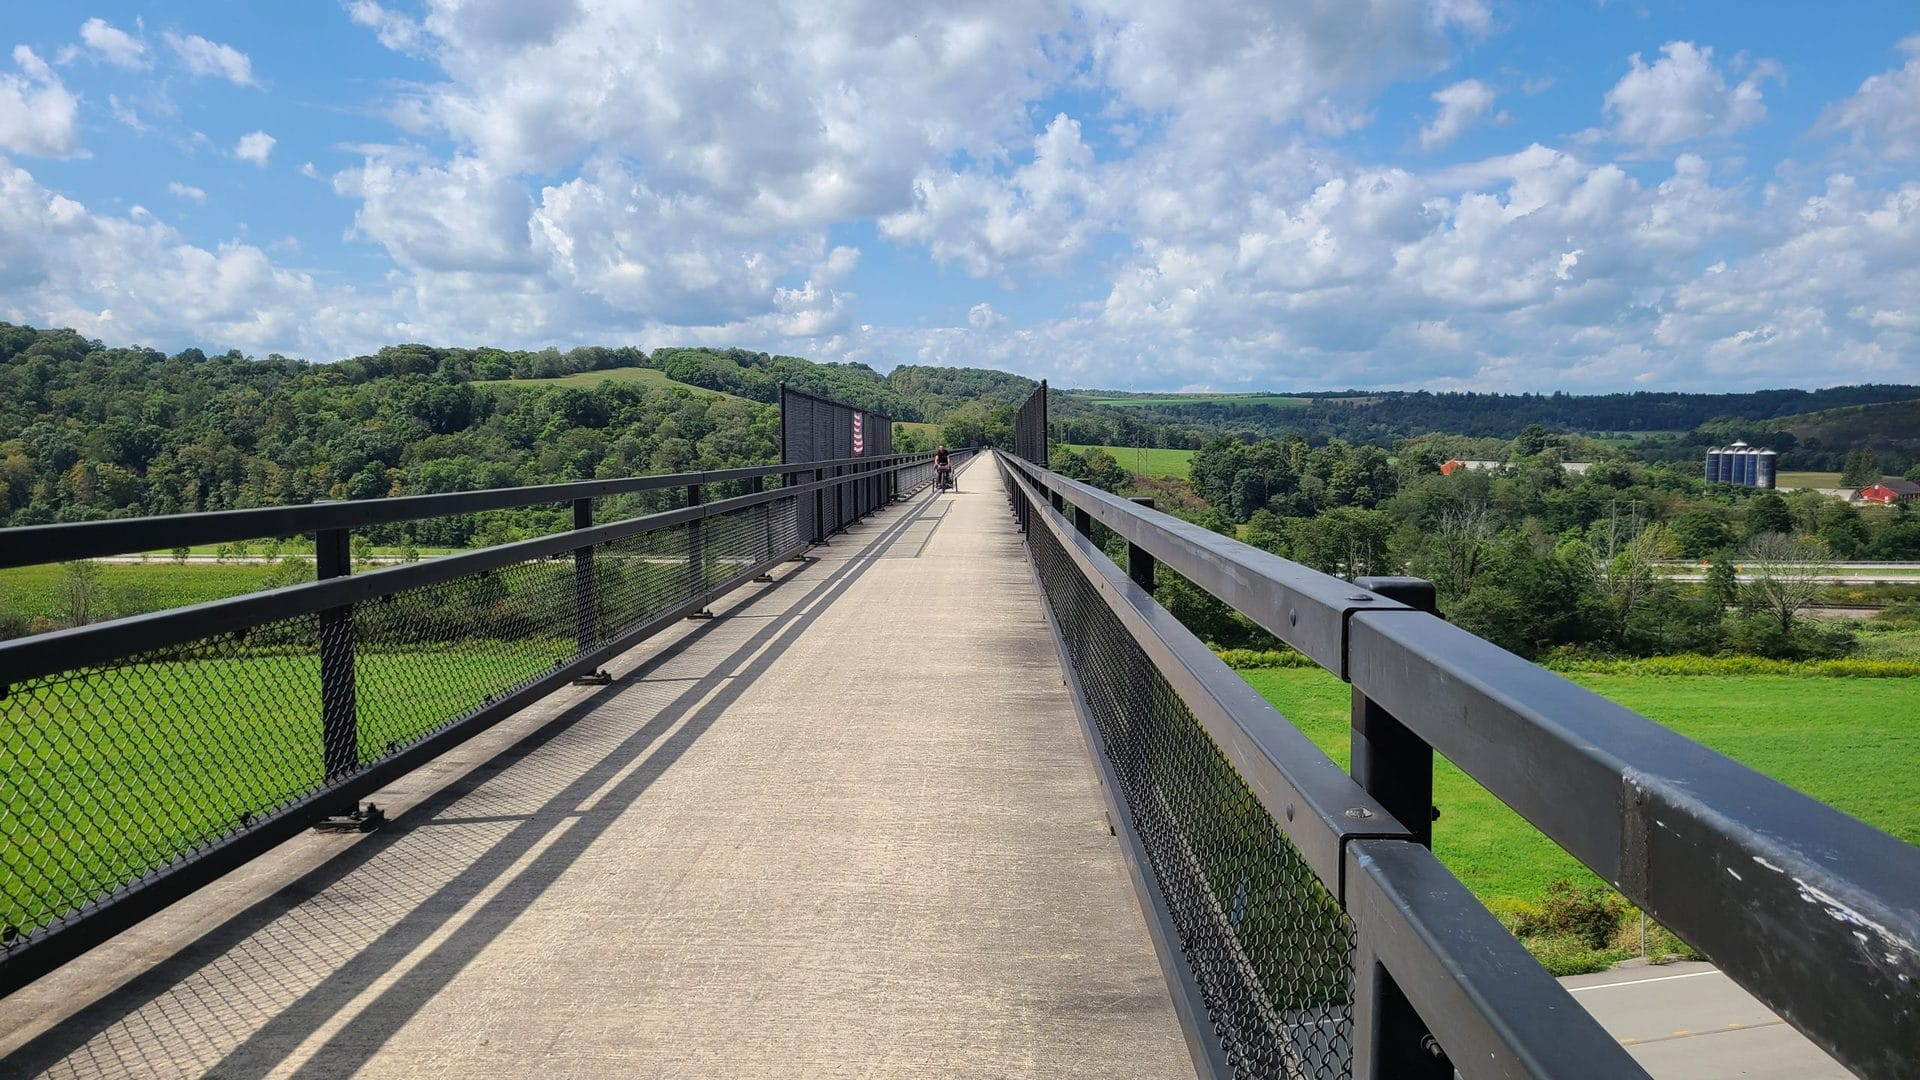 The trail uses a very long viaduct to cross over several highways and a railroad. Trees and hills dot the landscape.